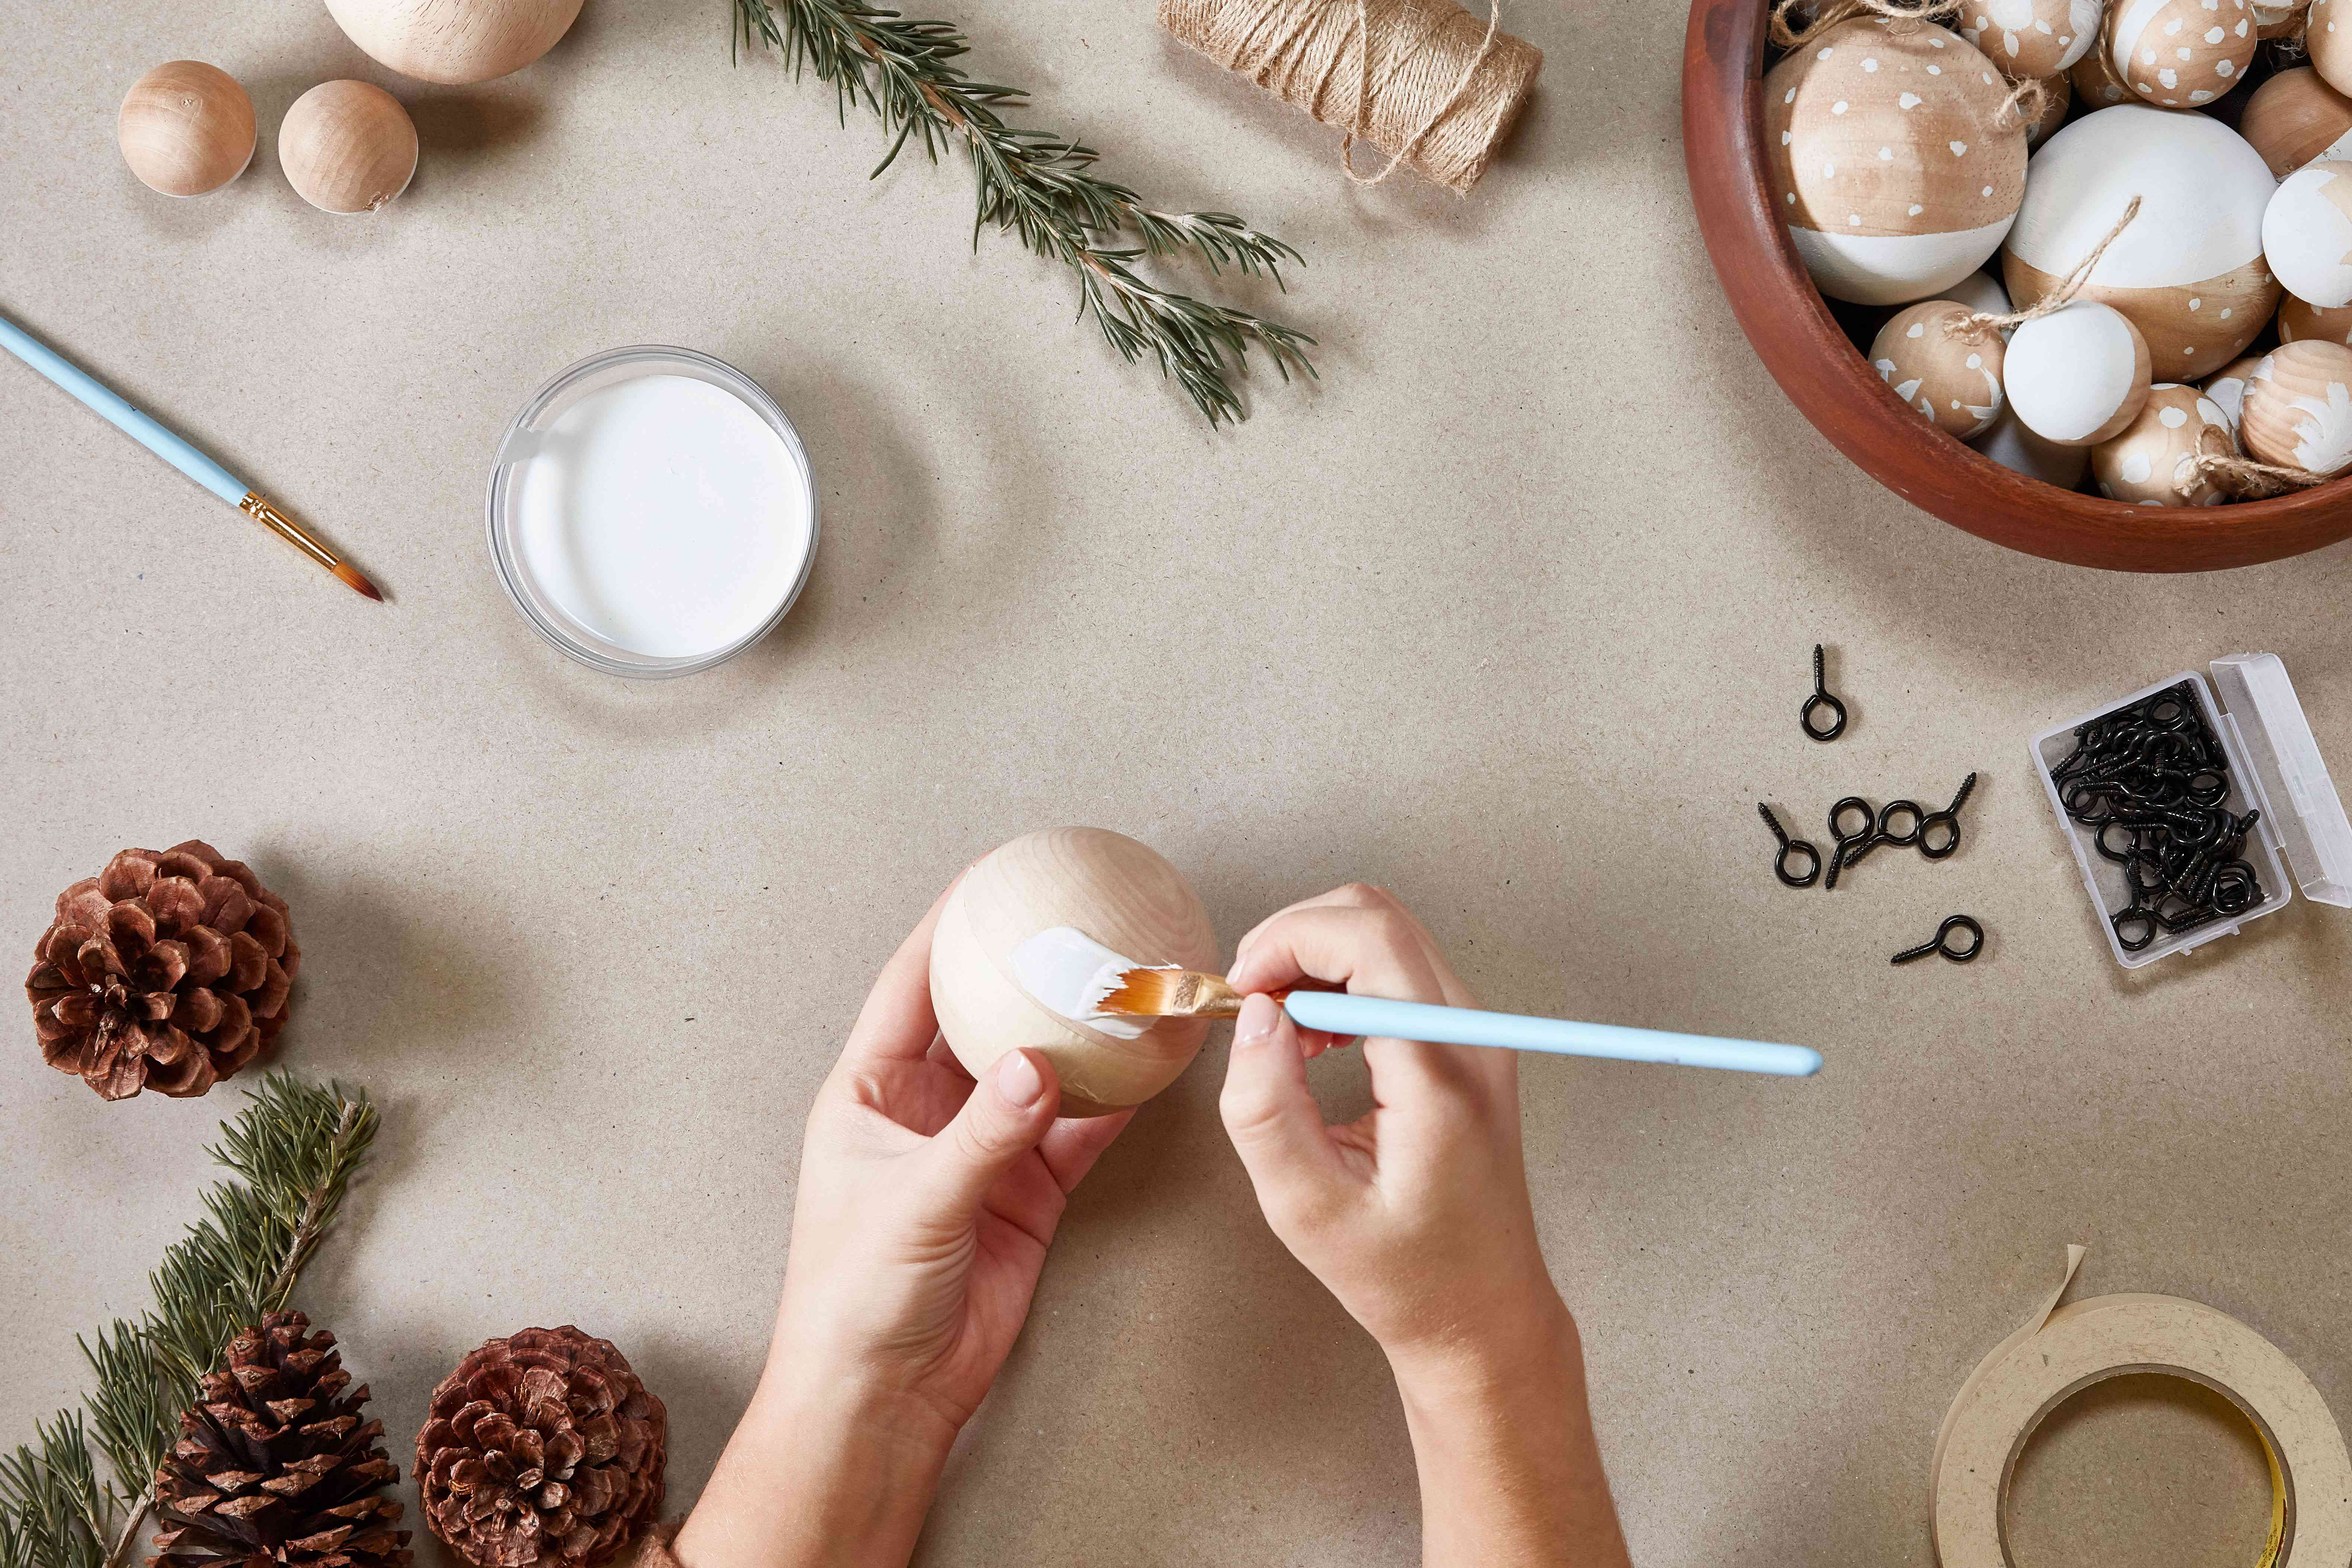 Hands painting a wooden ornament